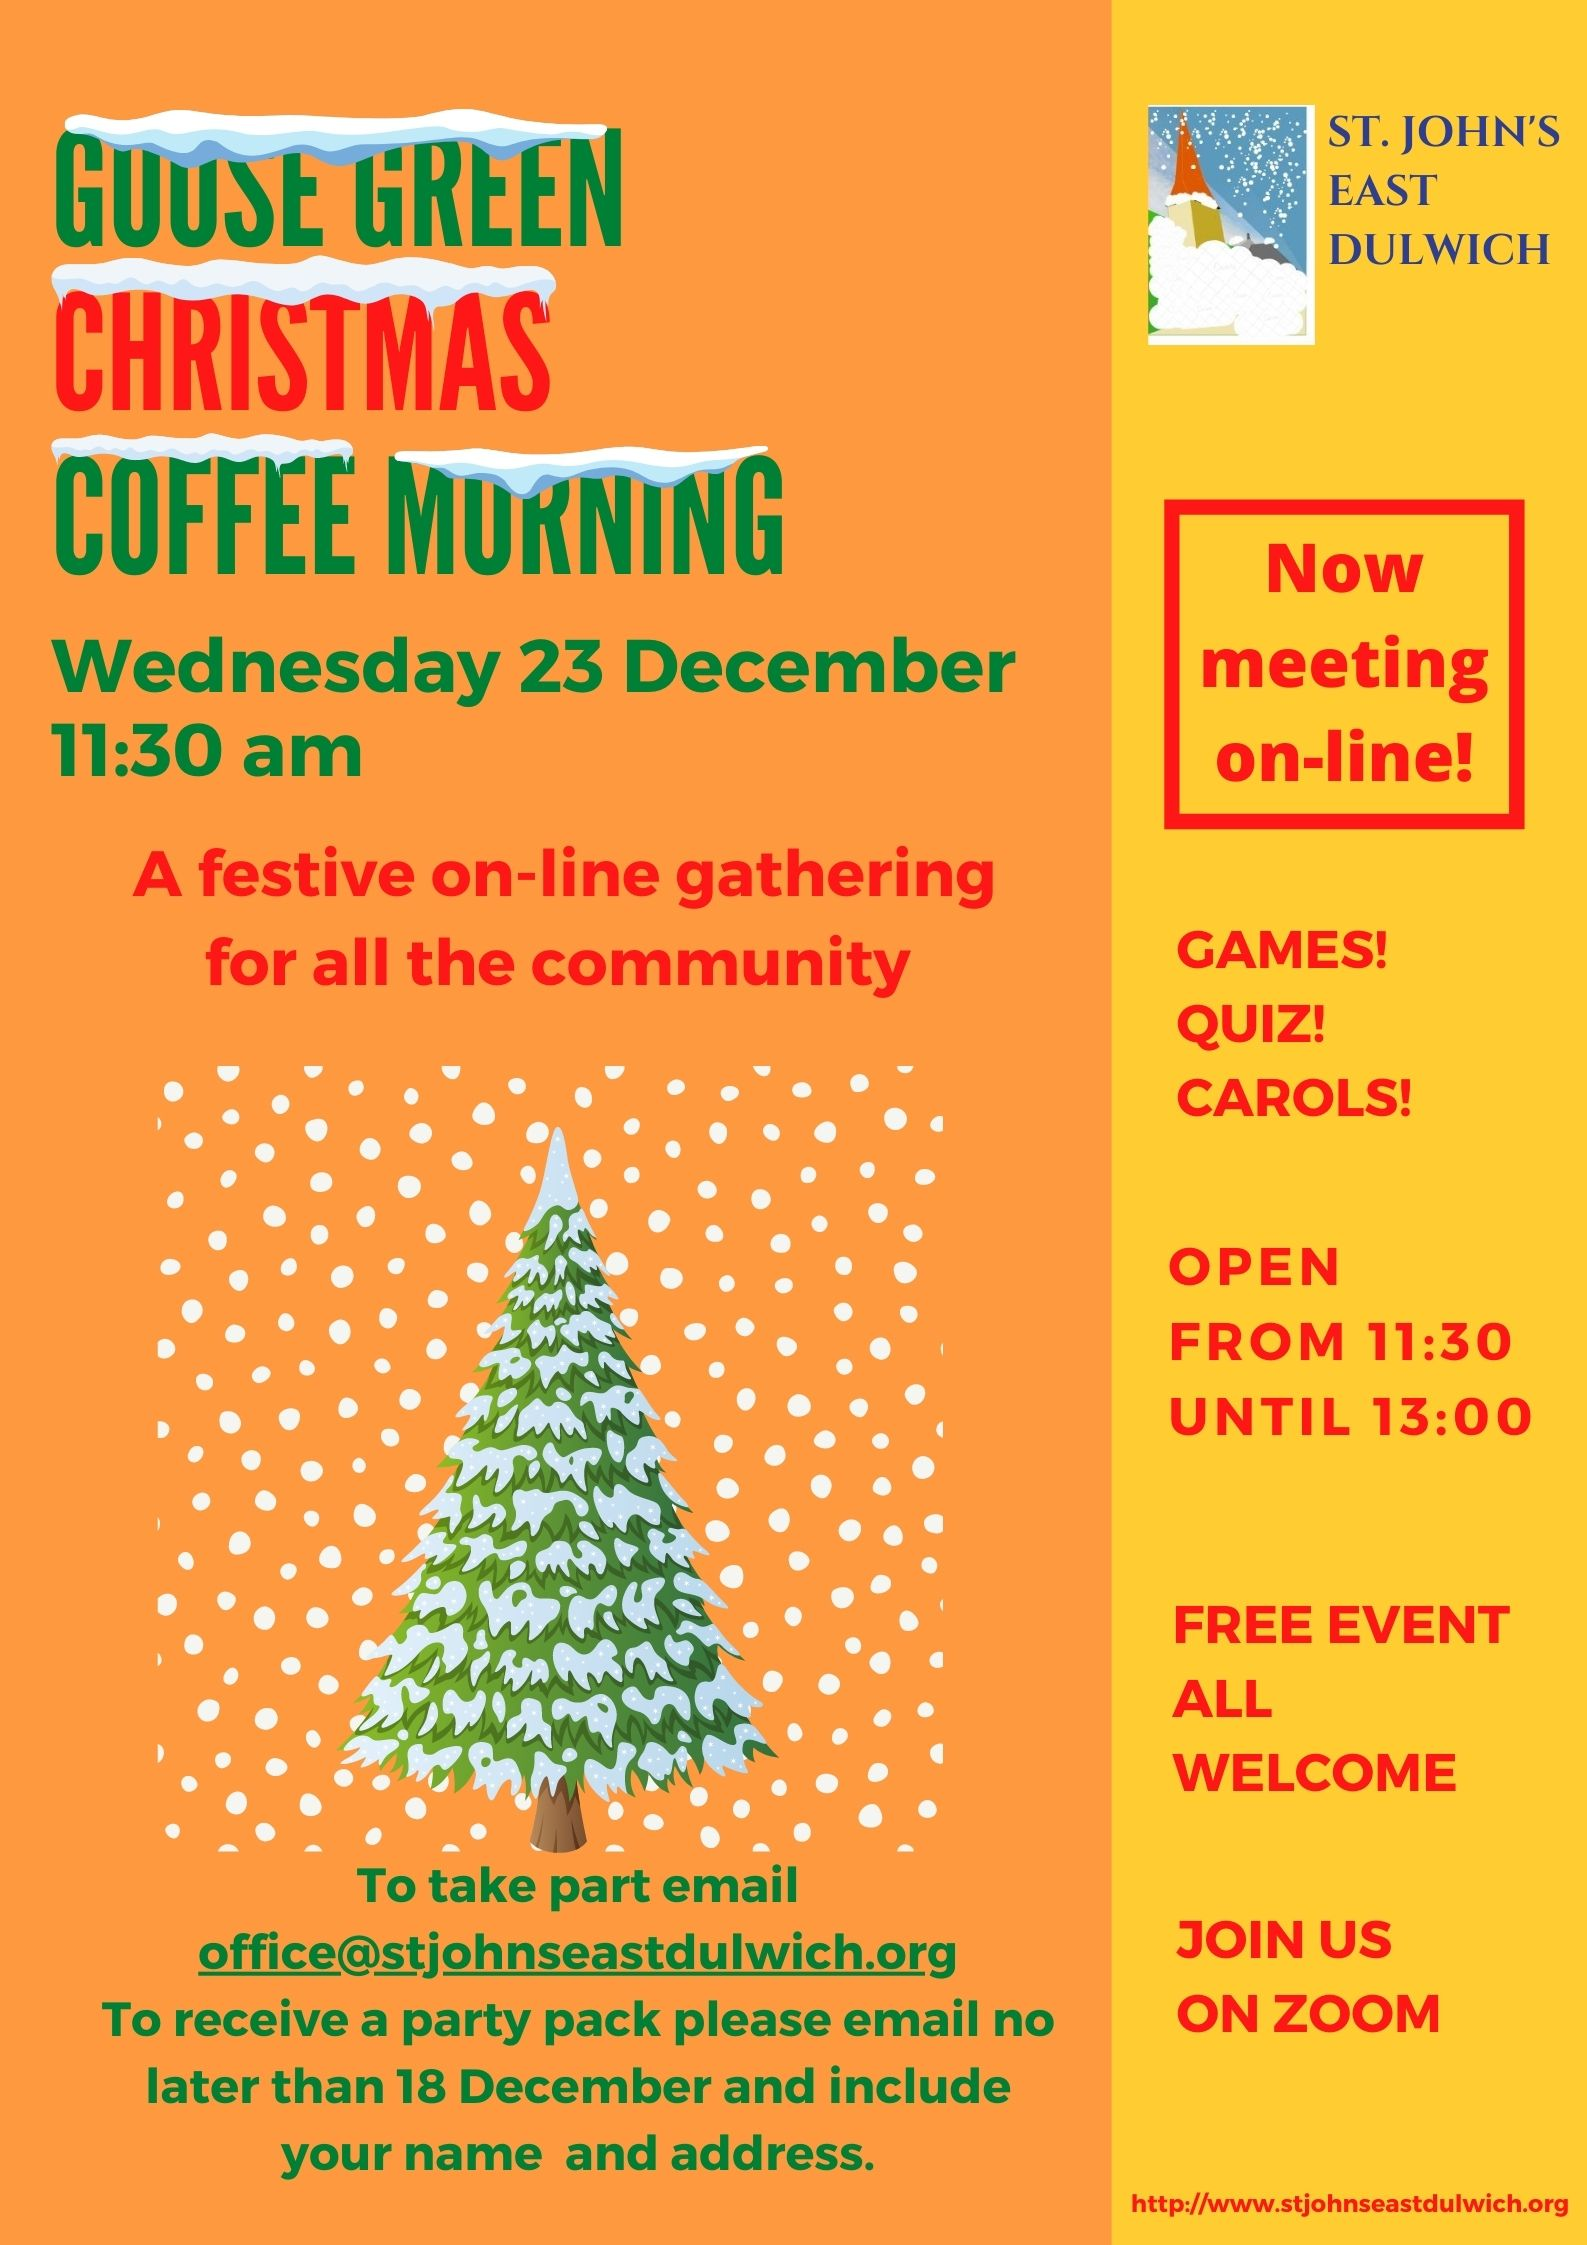 Christmas Coffee Morning Poster showing Christmas tree in the snow.